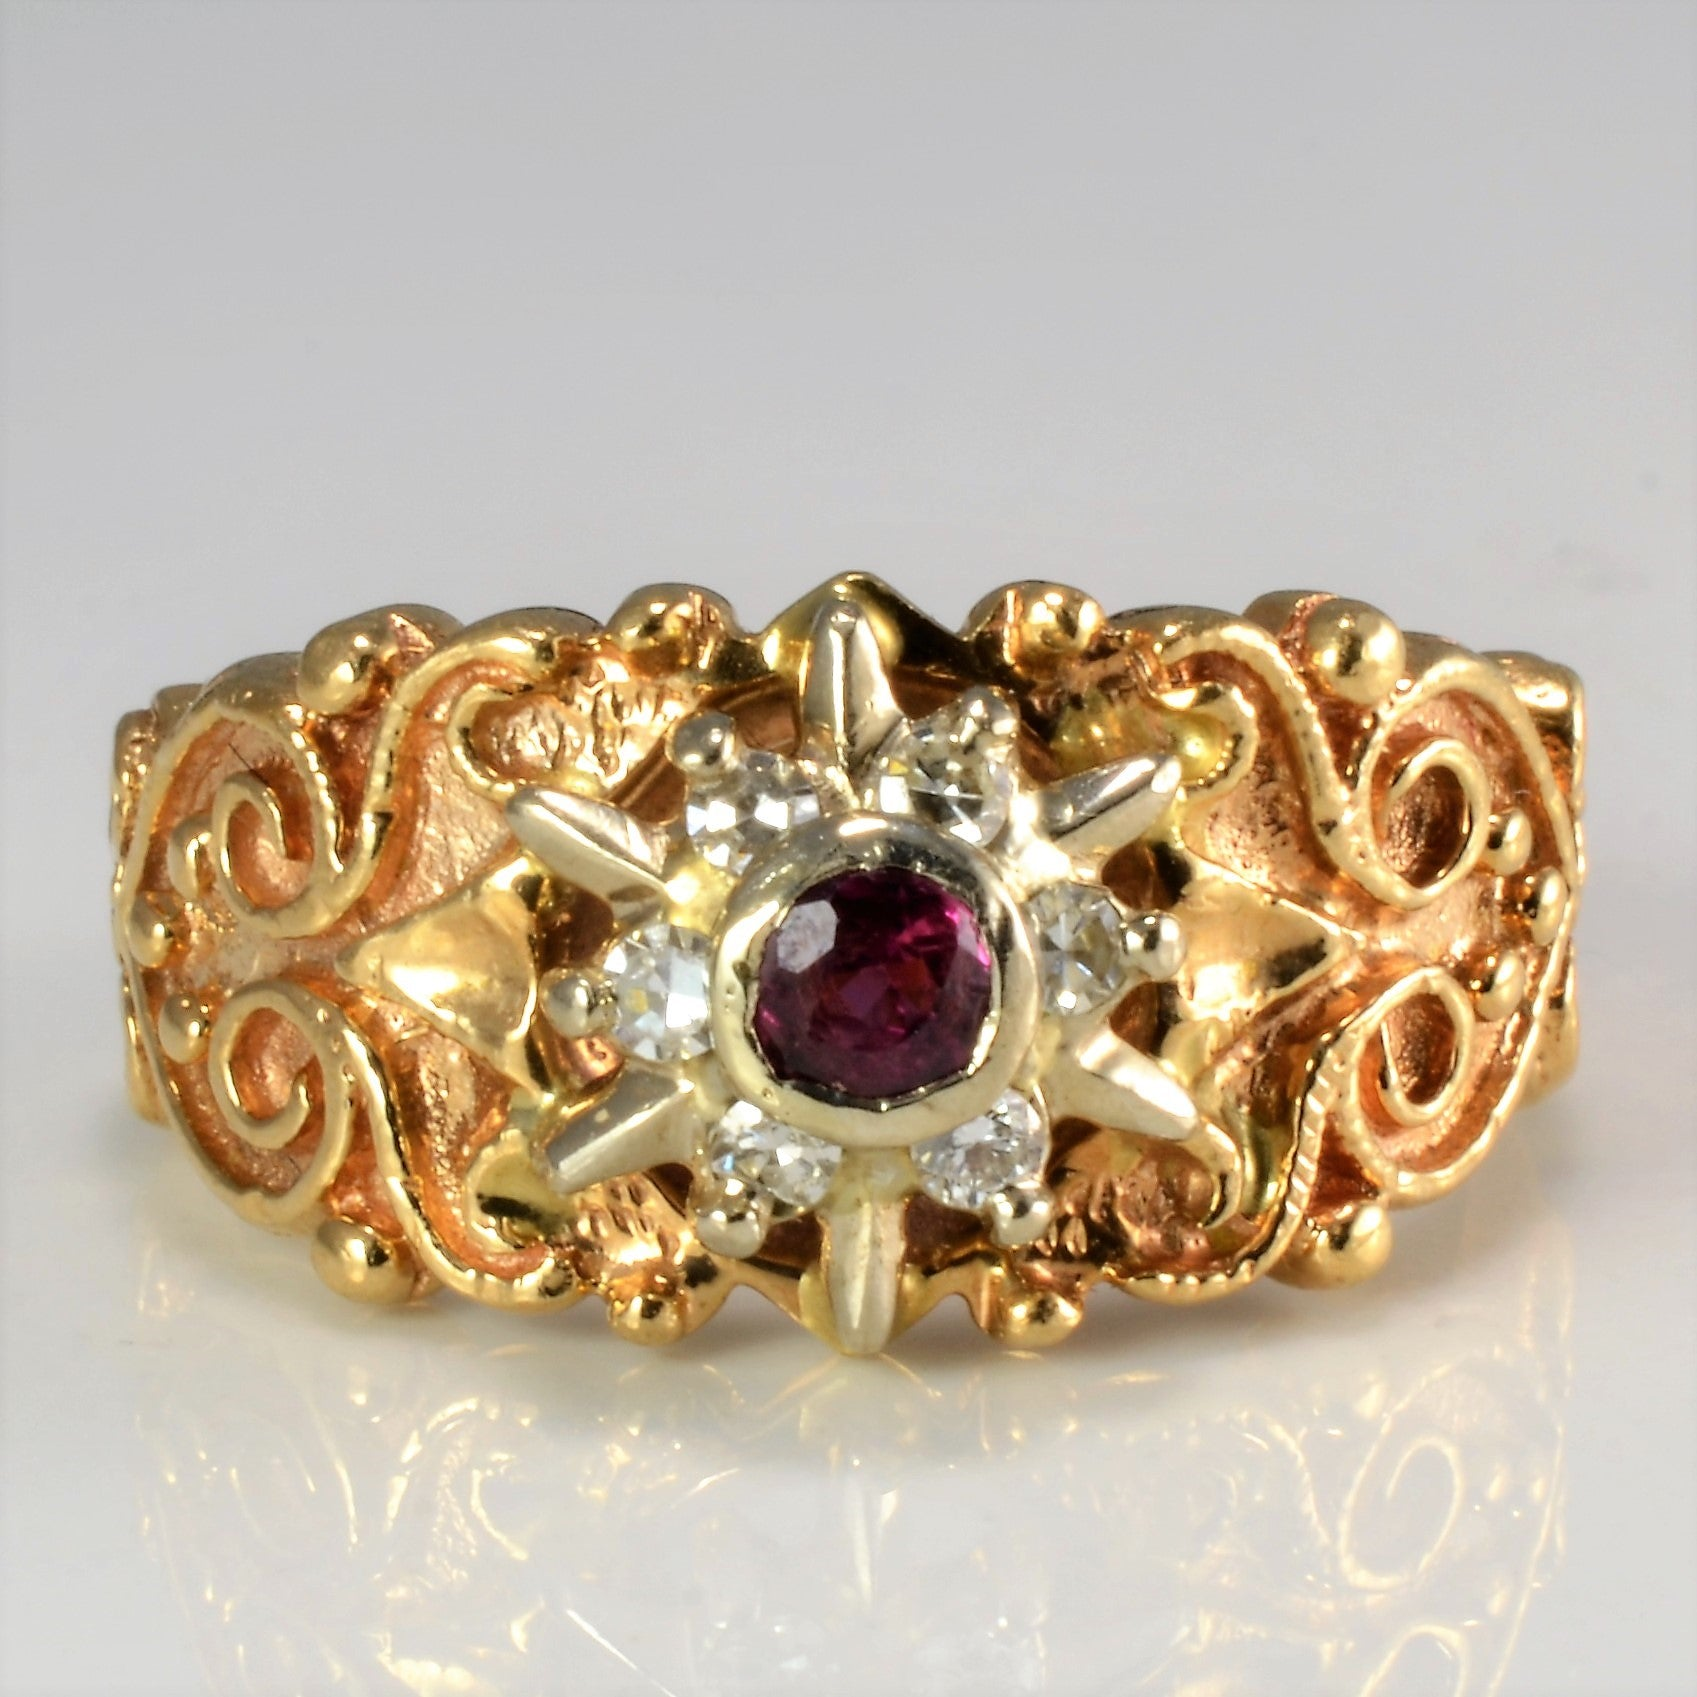 Vintage Filigree Designer Ruby & Diamond Ring | 0.12 ctw, SZ 6.25 |